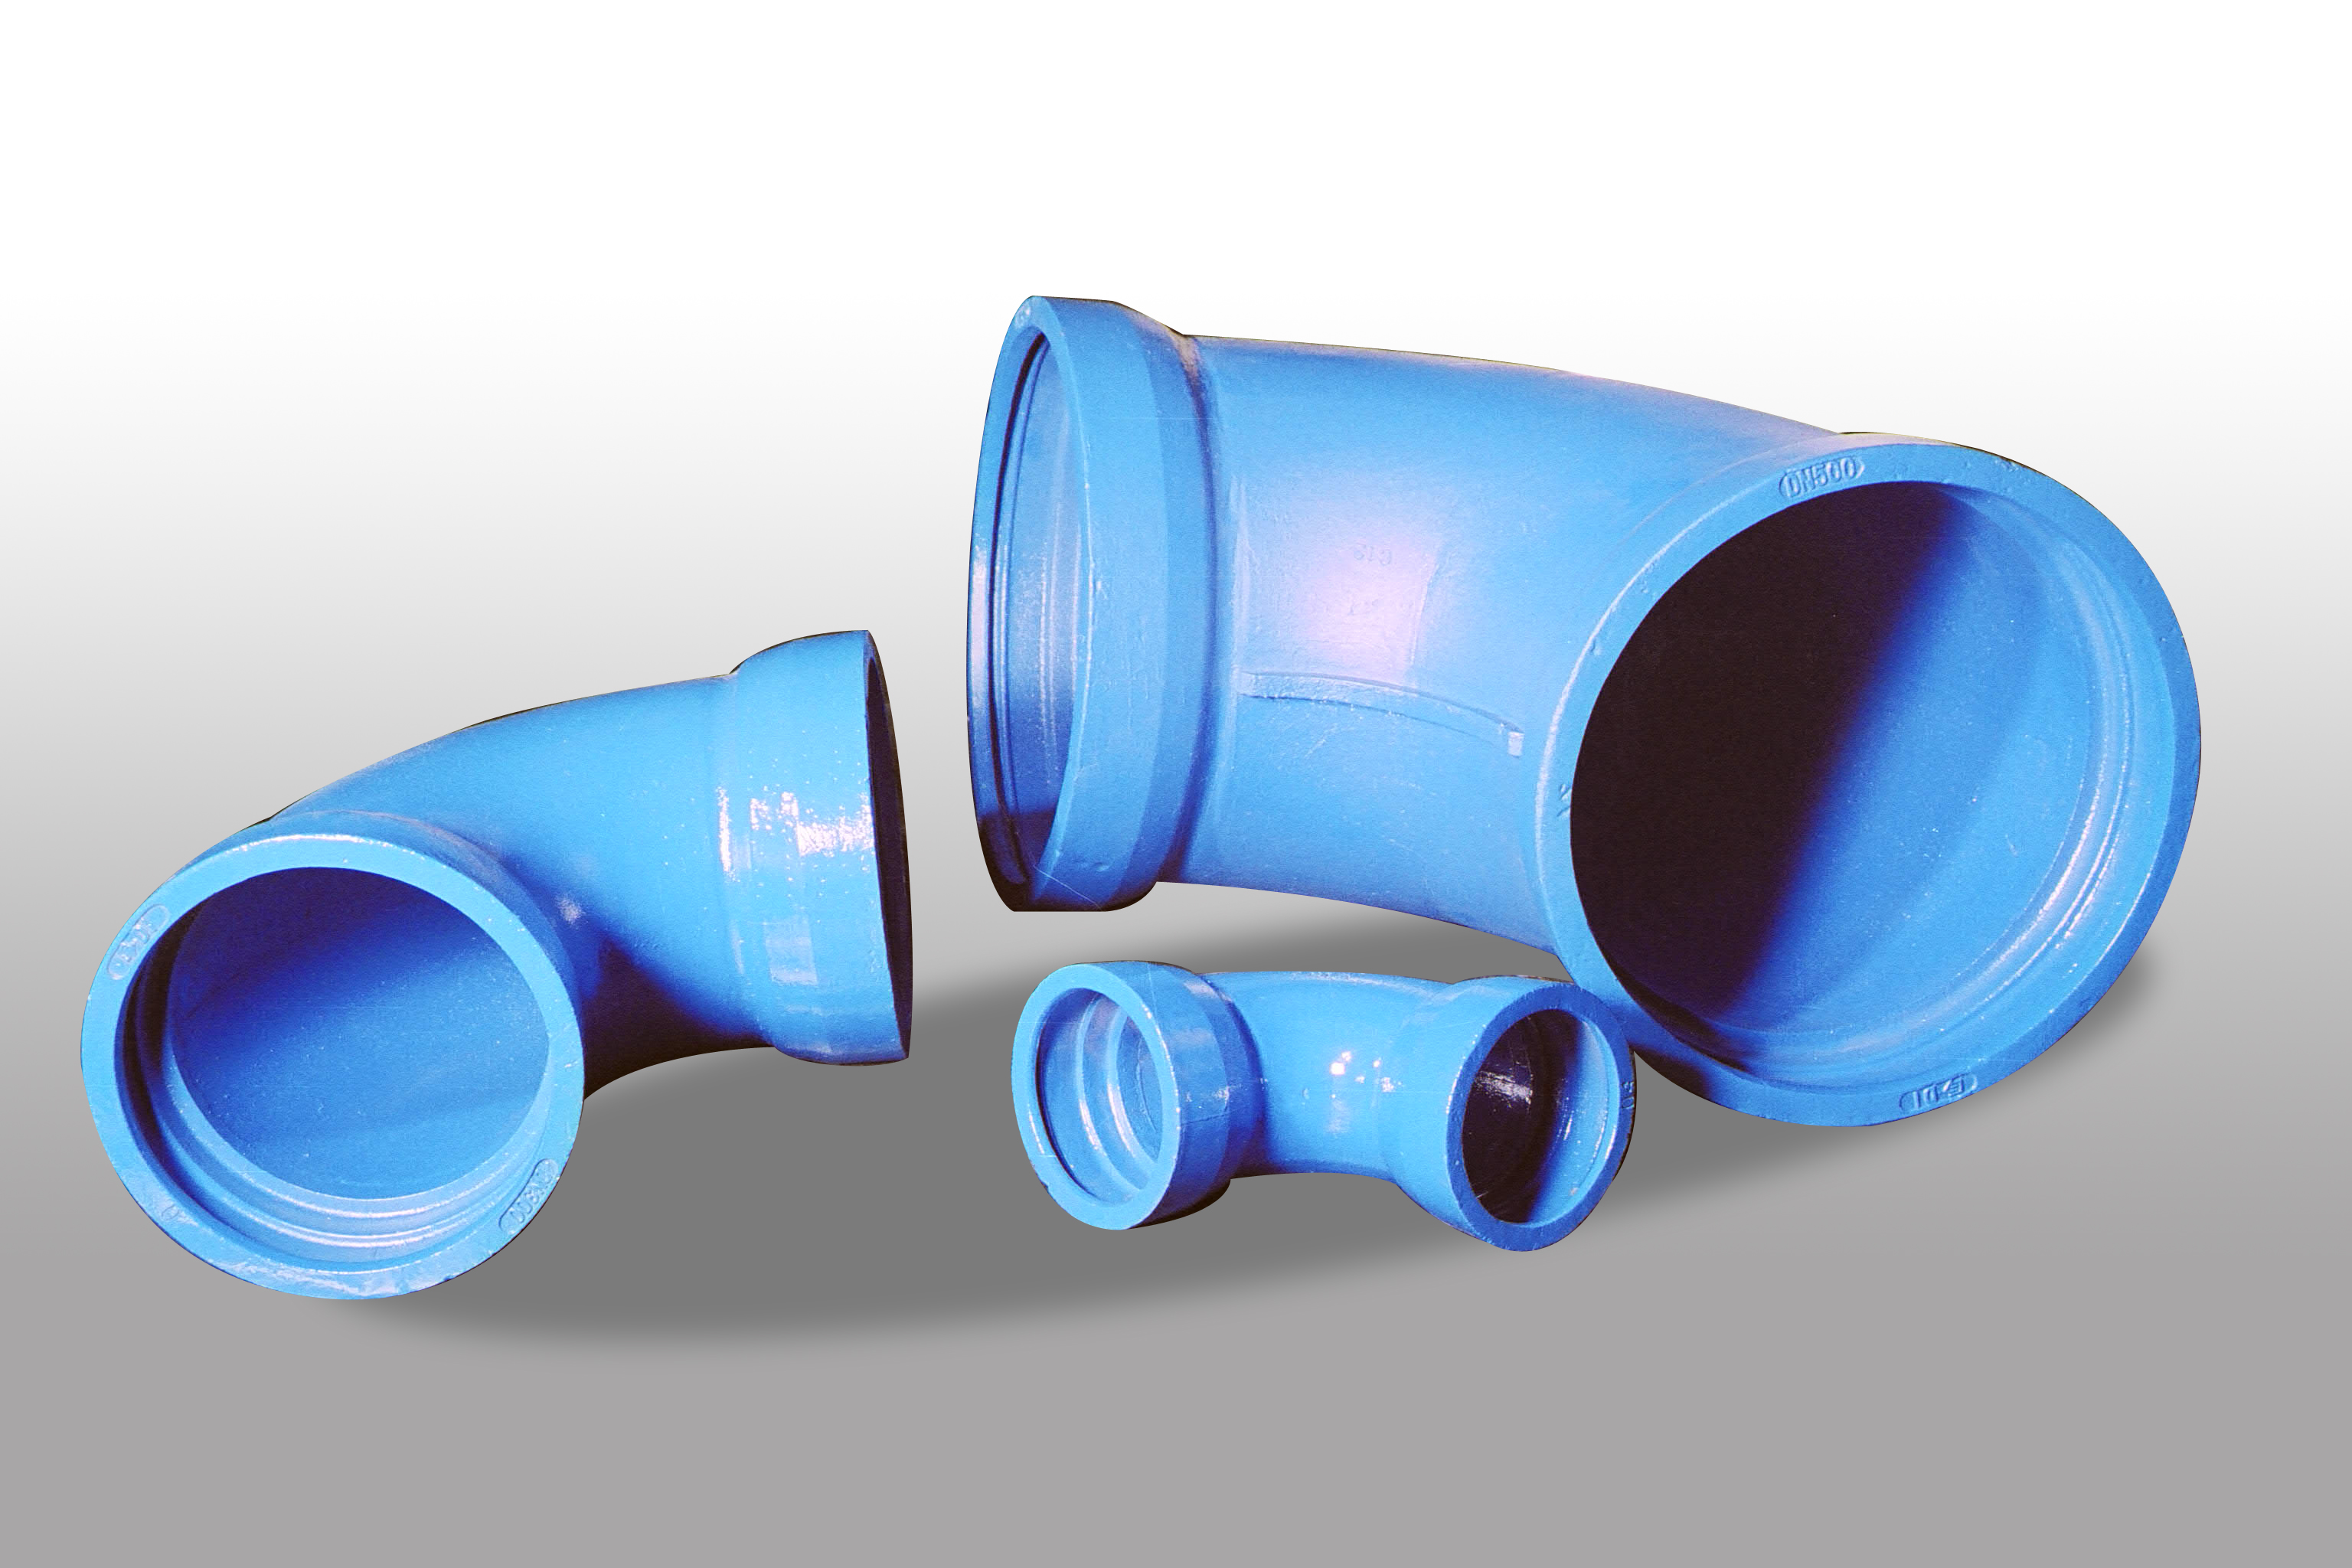 FBE coated Pipeline Parts